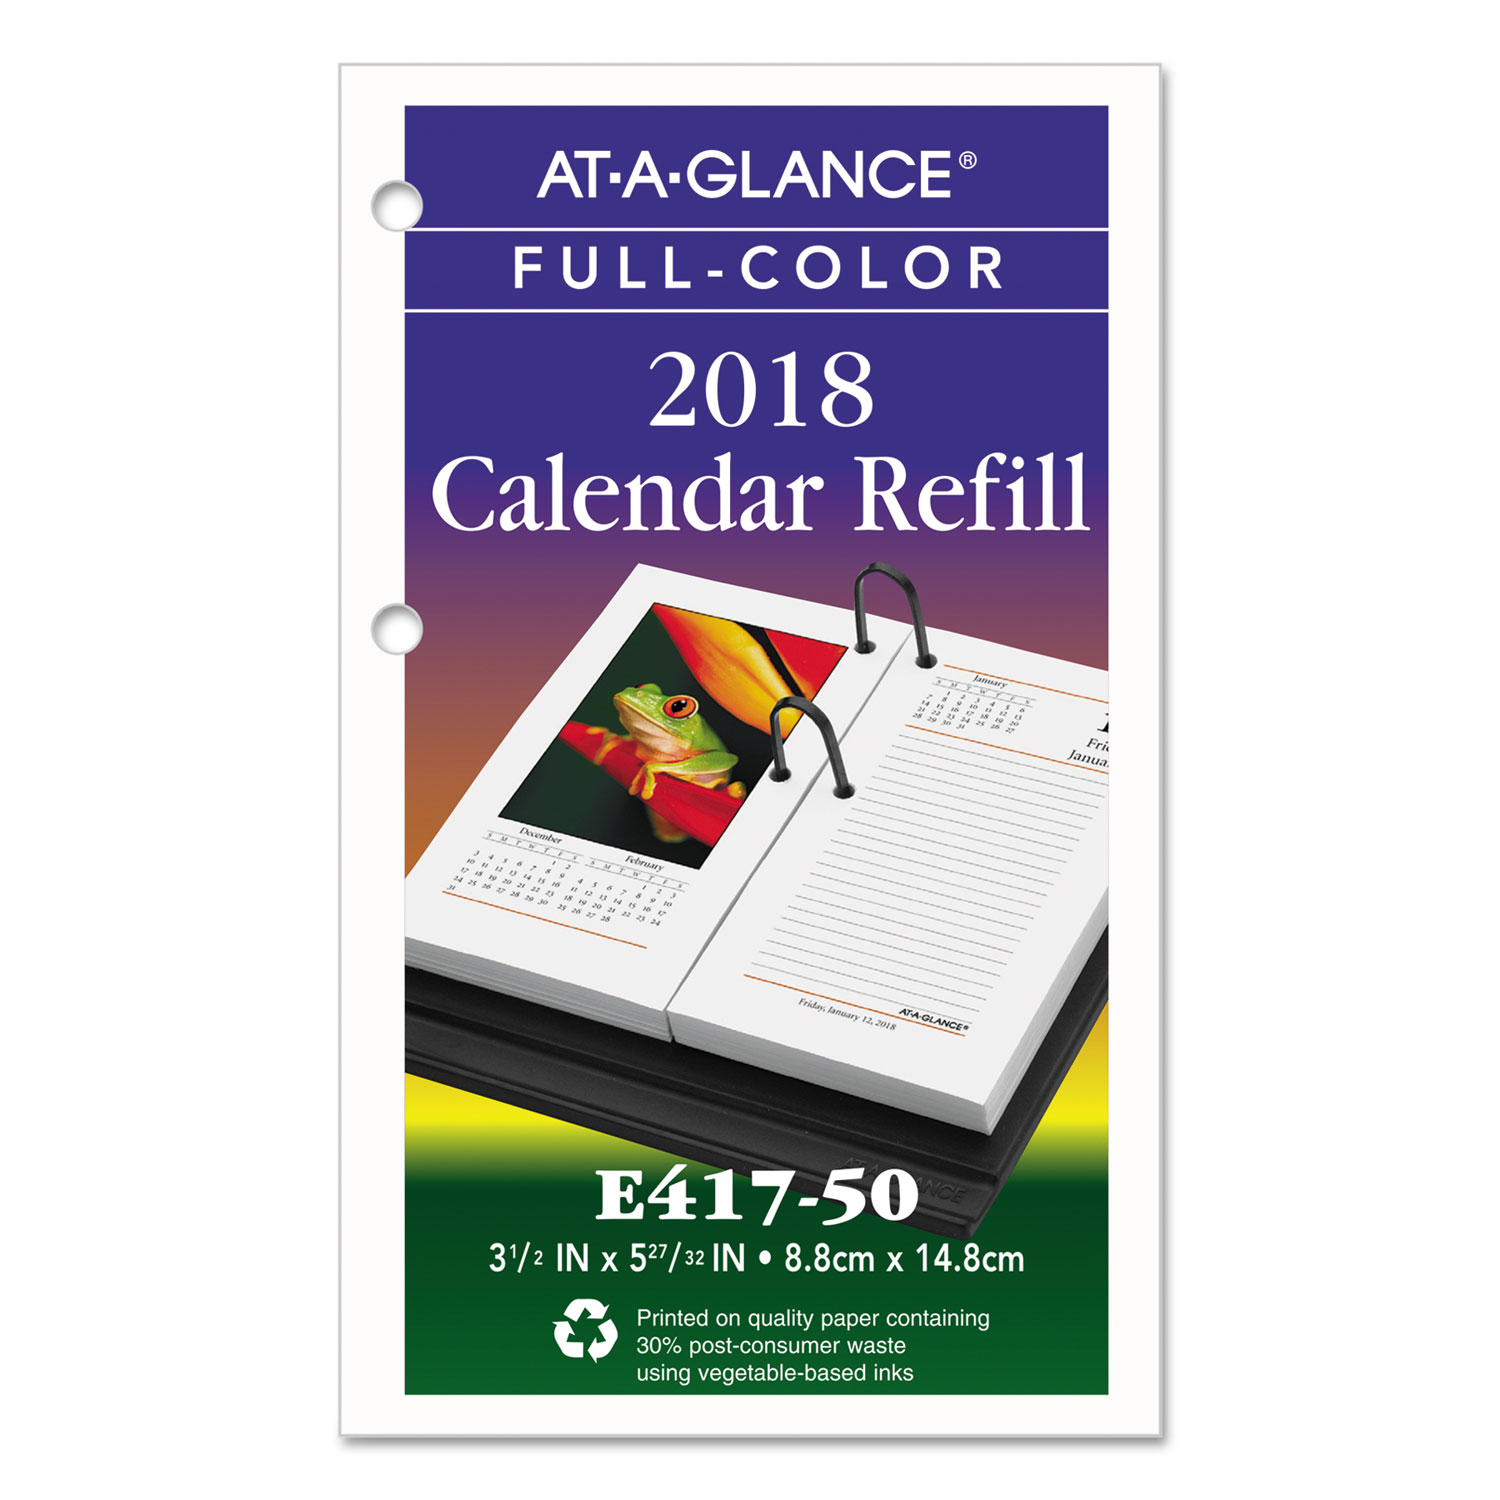 Calendar Refill : Photographic desk calendar refill by at a glance